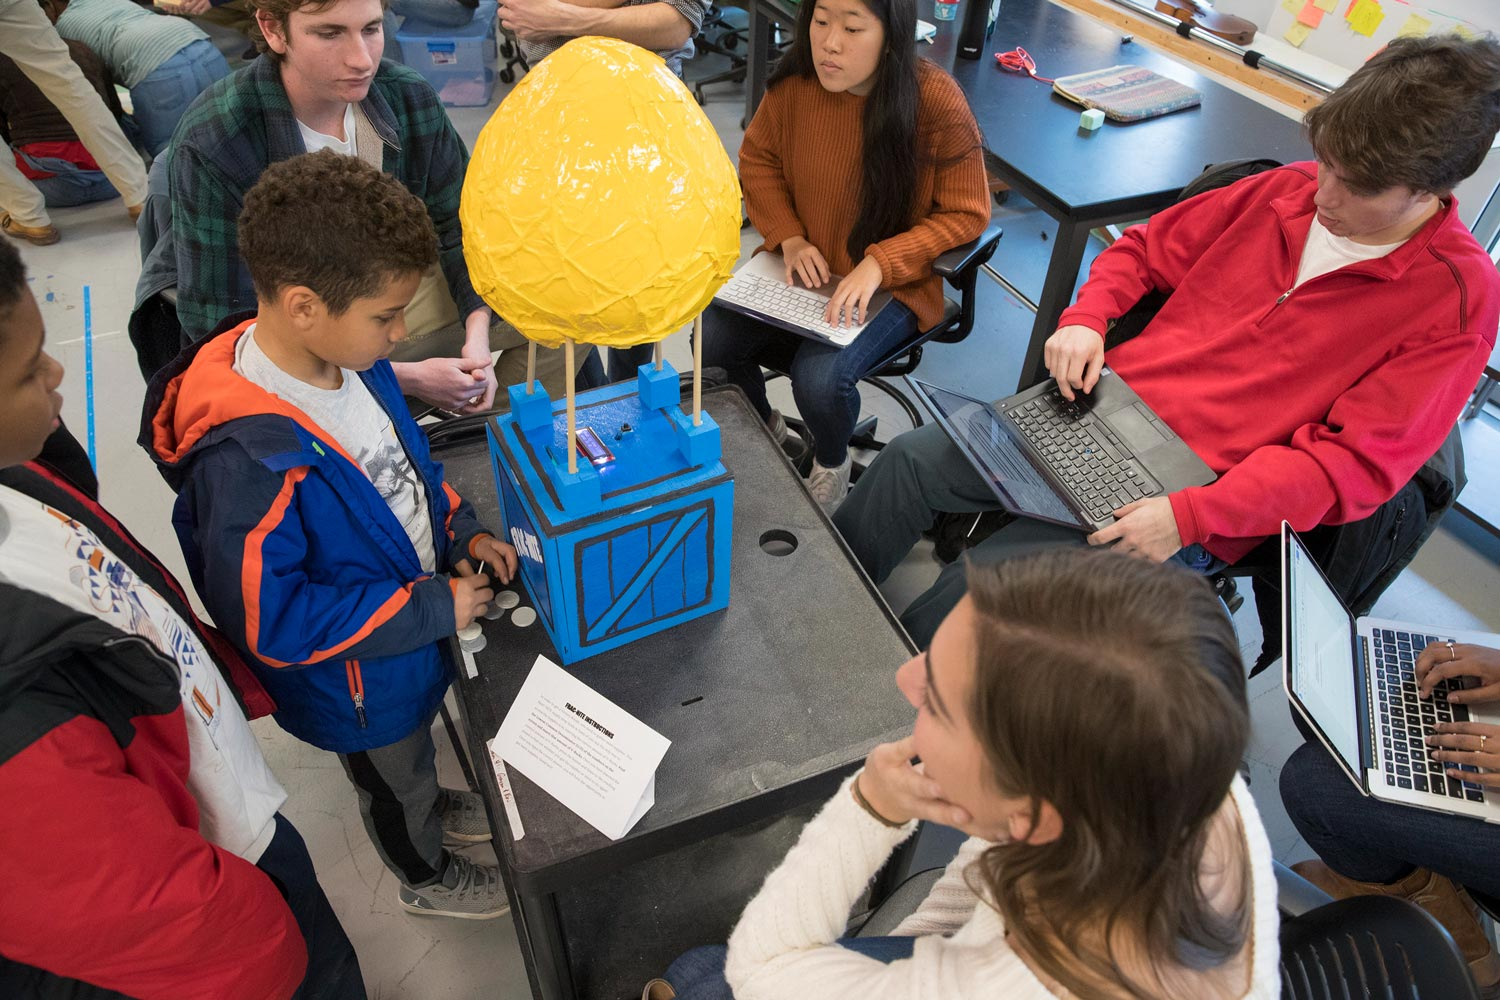 UVA students observe as Clark Elementary fourth-grade students find the common denominator and then insert coins in the box to determine the numerator.